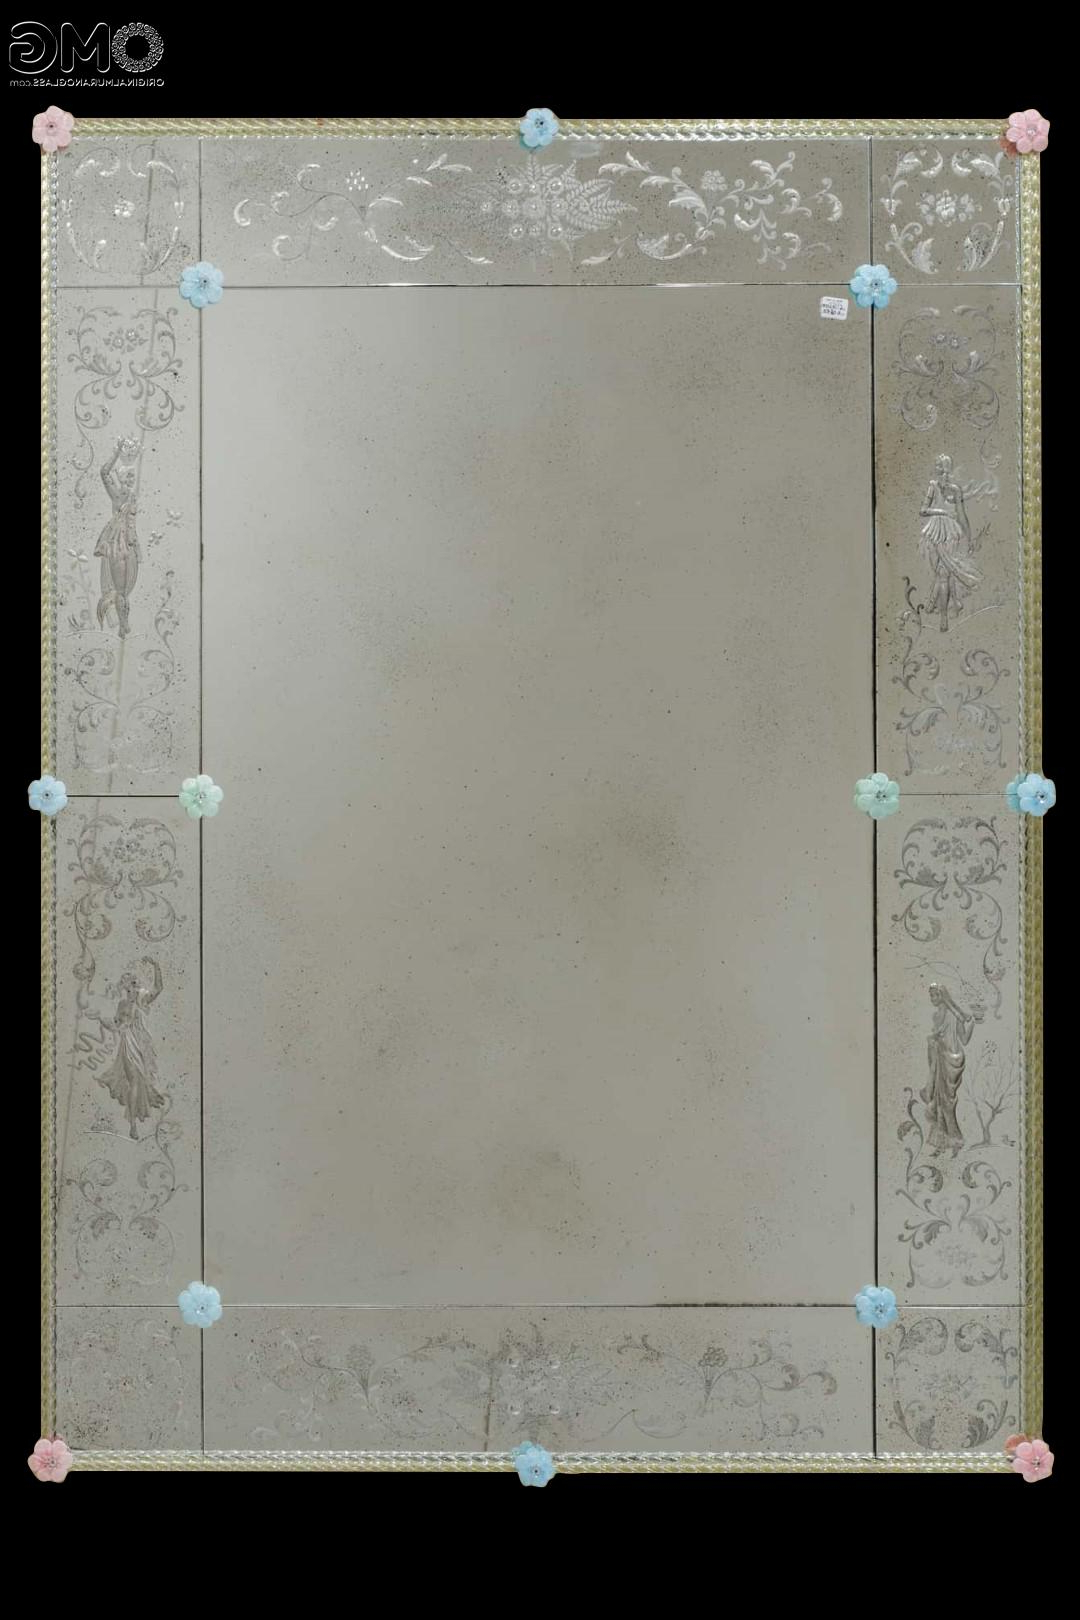 Four Seasons – Wall Venetian Mirror – Engraved With Murano Glass With Regard To Most Up To Date Decorative Etched Wall Mirrors (View 7 of 20)